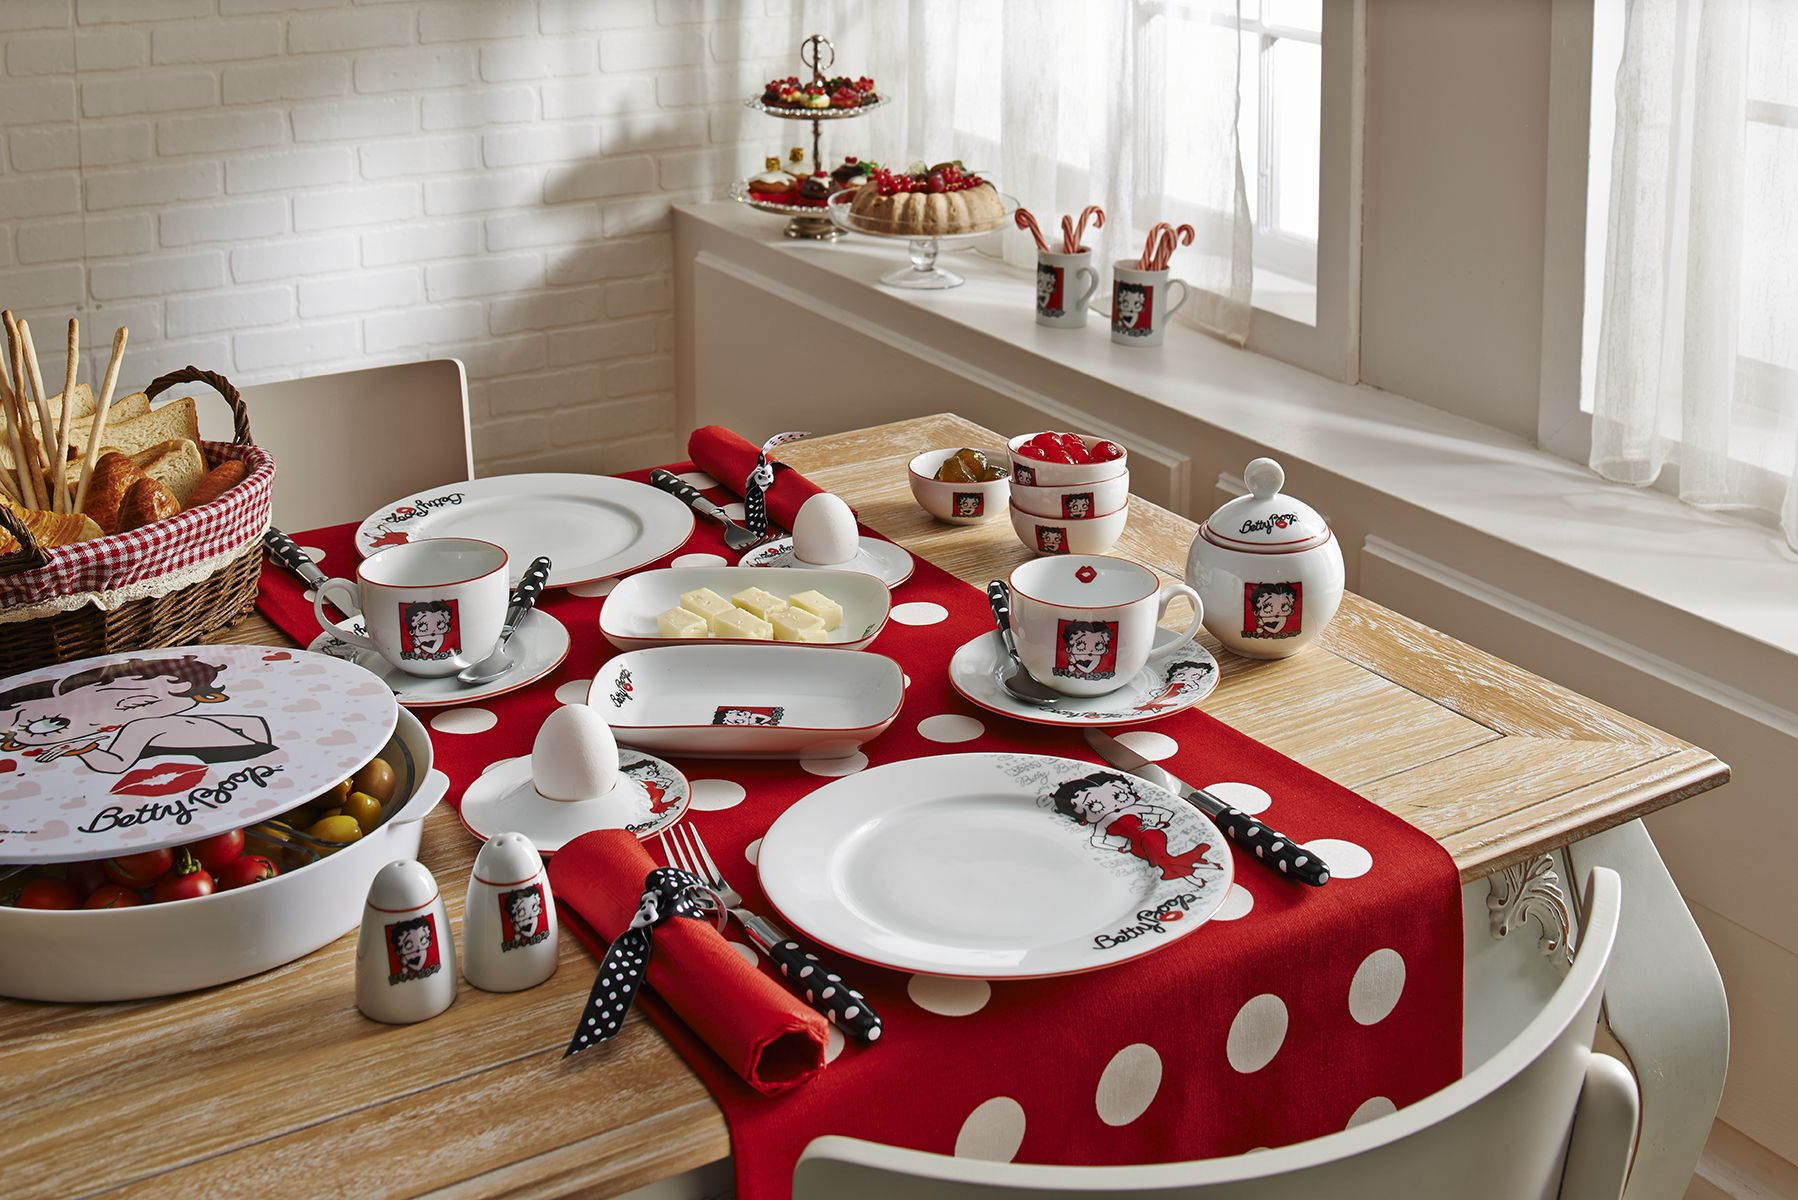 Betty boop kahvalt seti breakfast set bettyboop bernardo betty boop kahvalt seti breakfast set bettyboop bernardo breakfast red geotapseo Image collections